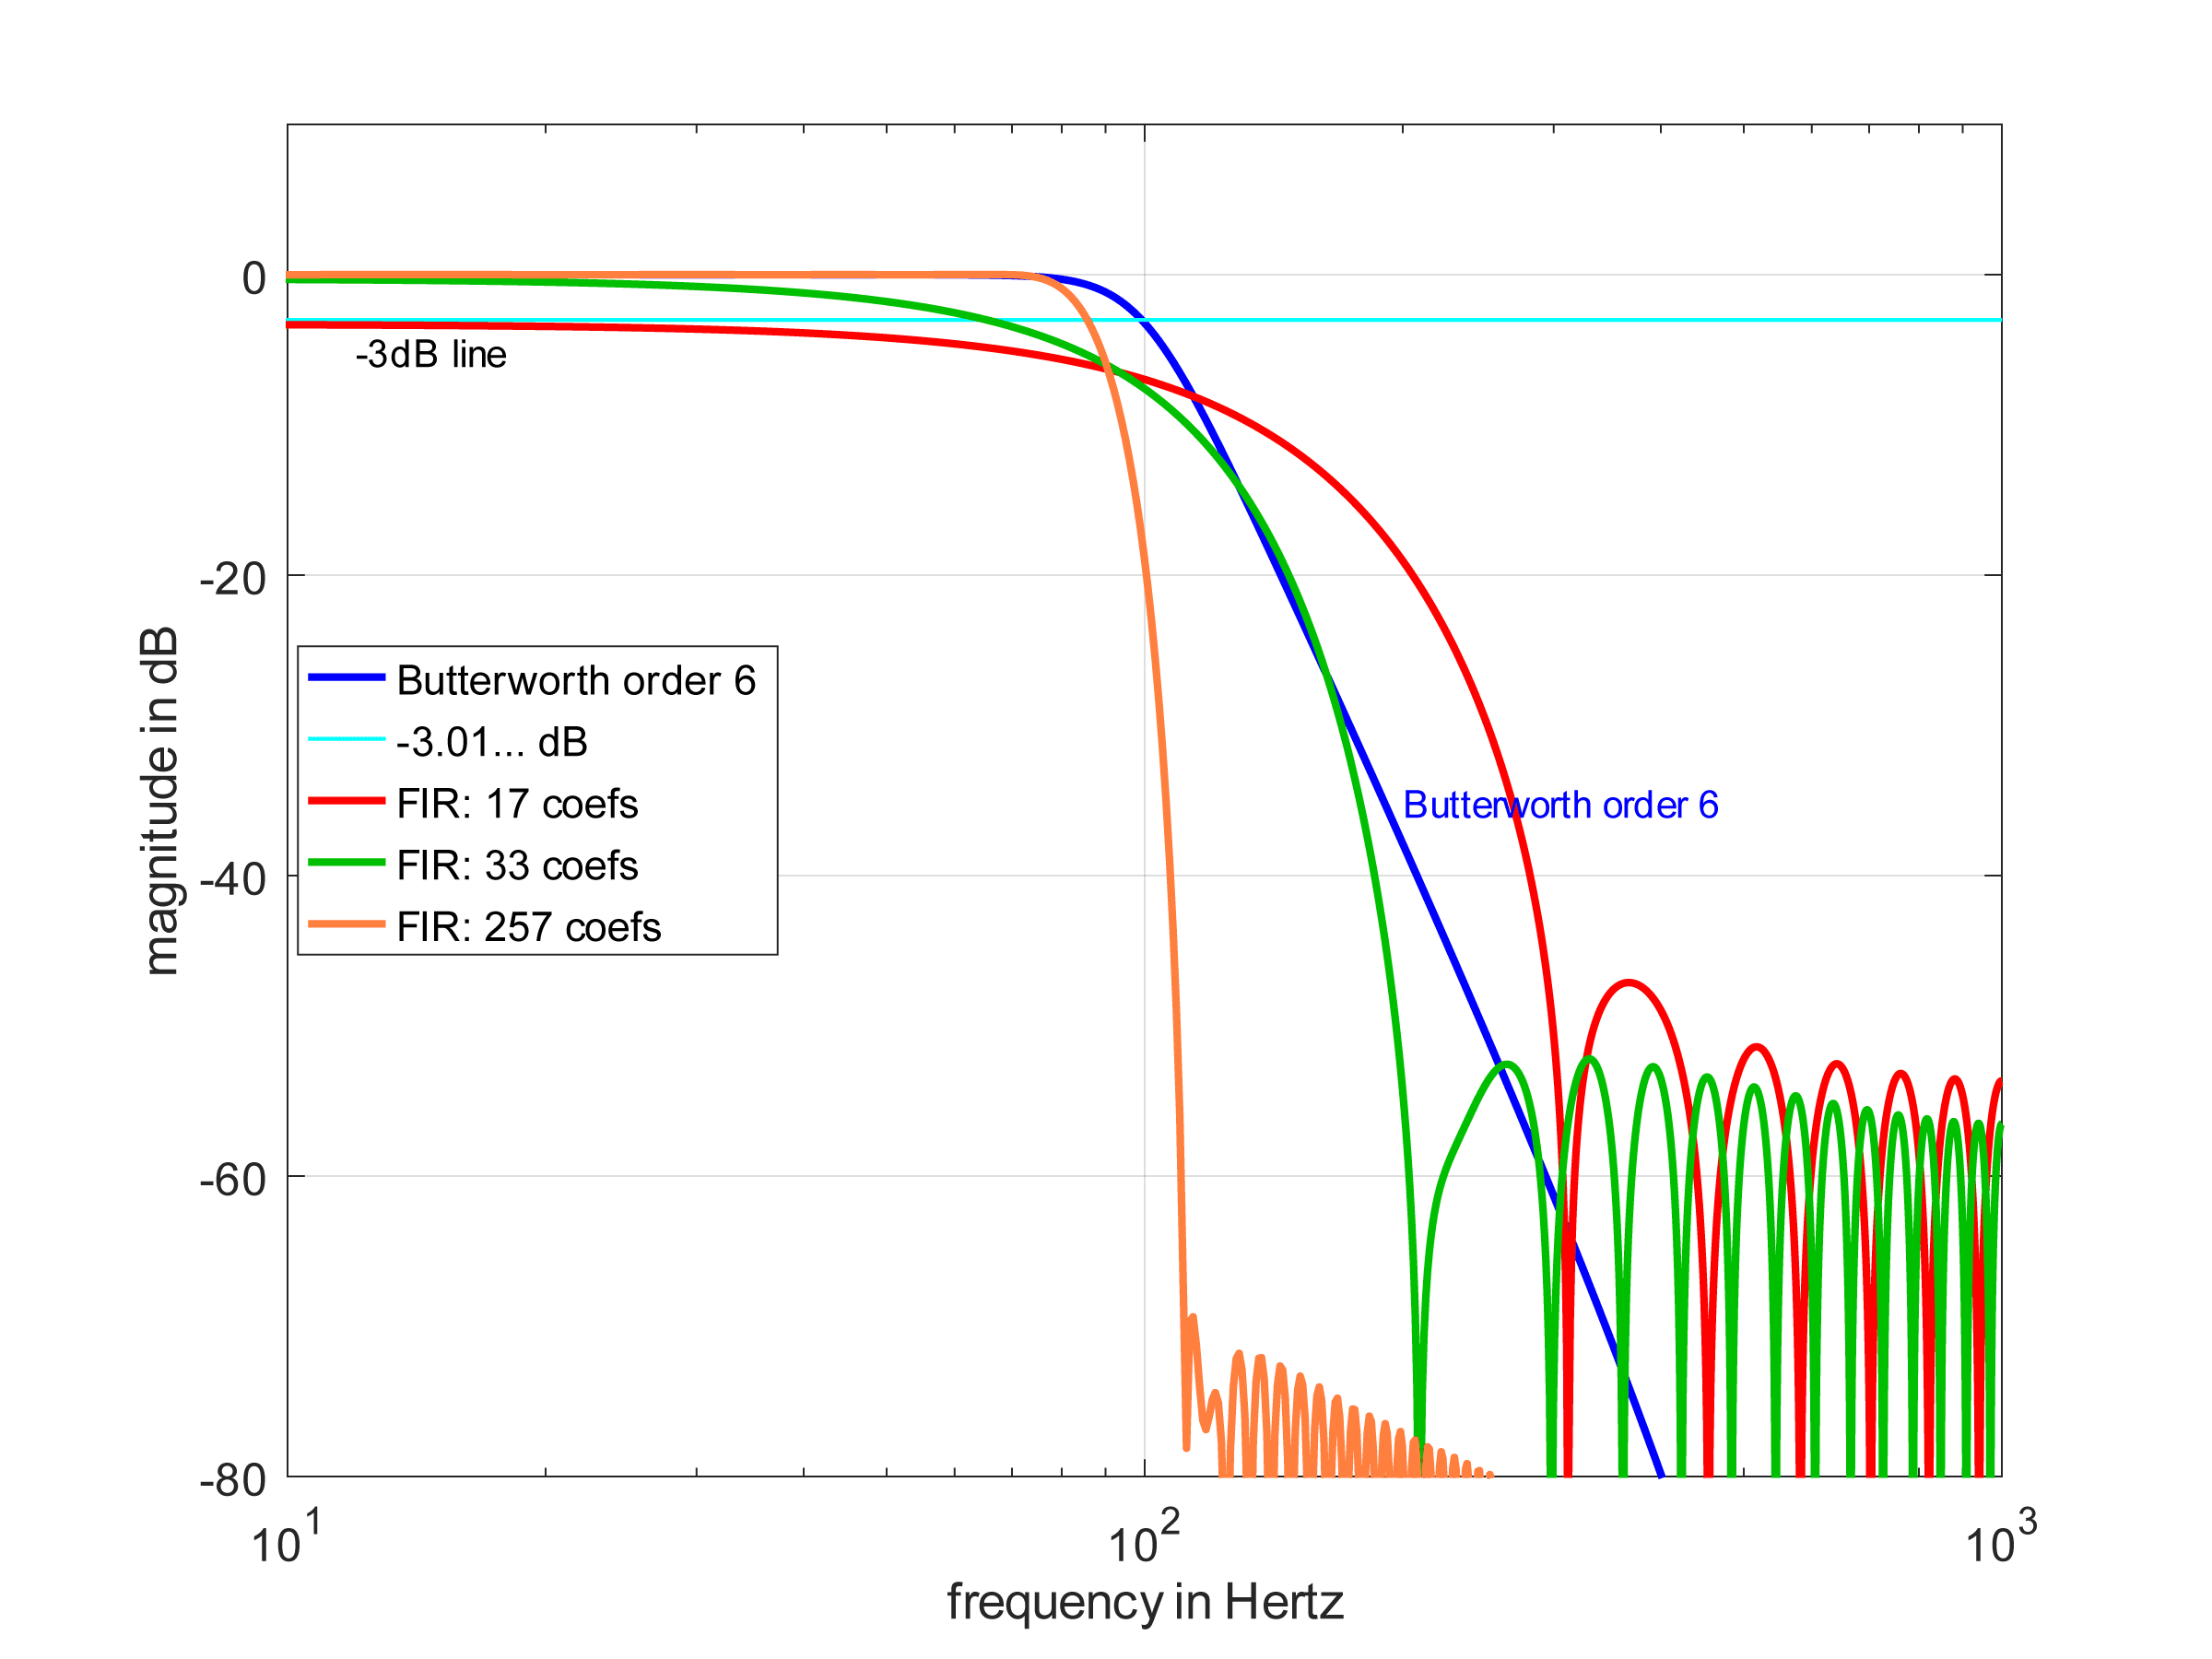 graph comparing an IIR Butterworth 6th order to FIR filters with 17, 33, and 257 coefficients